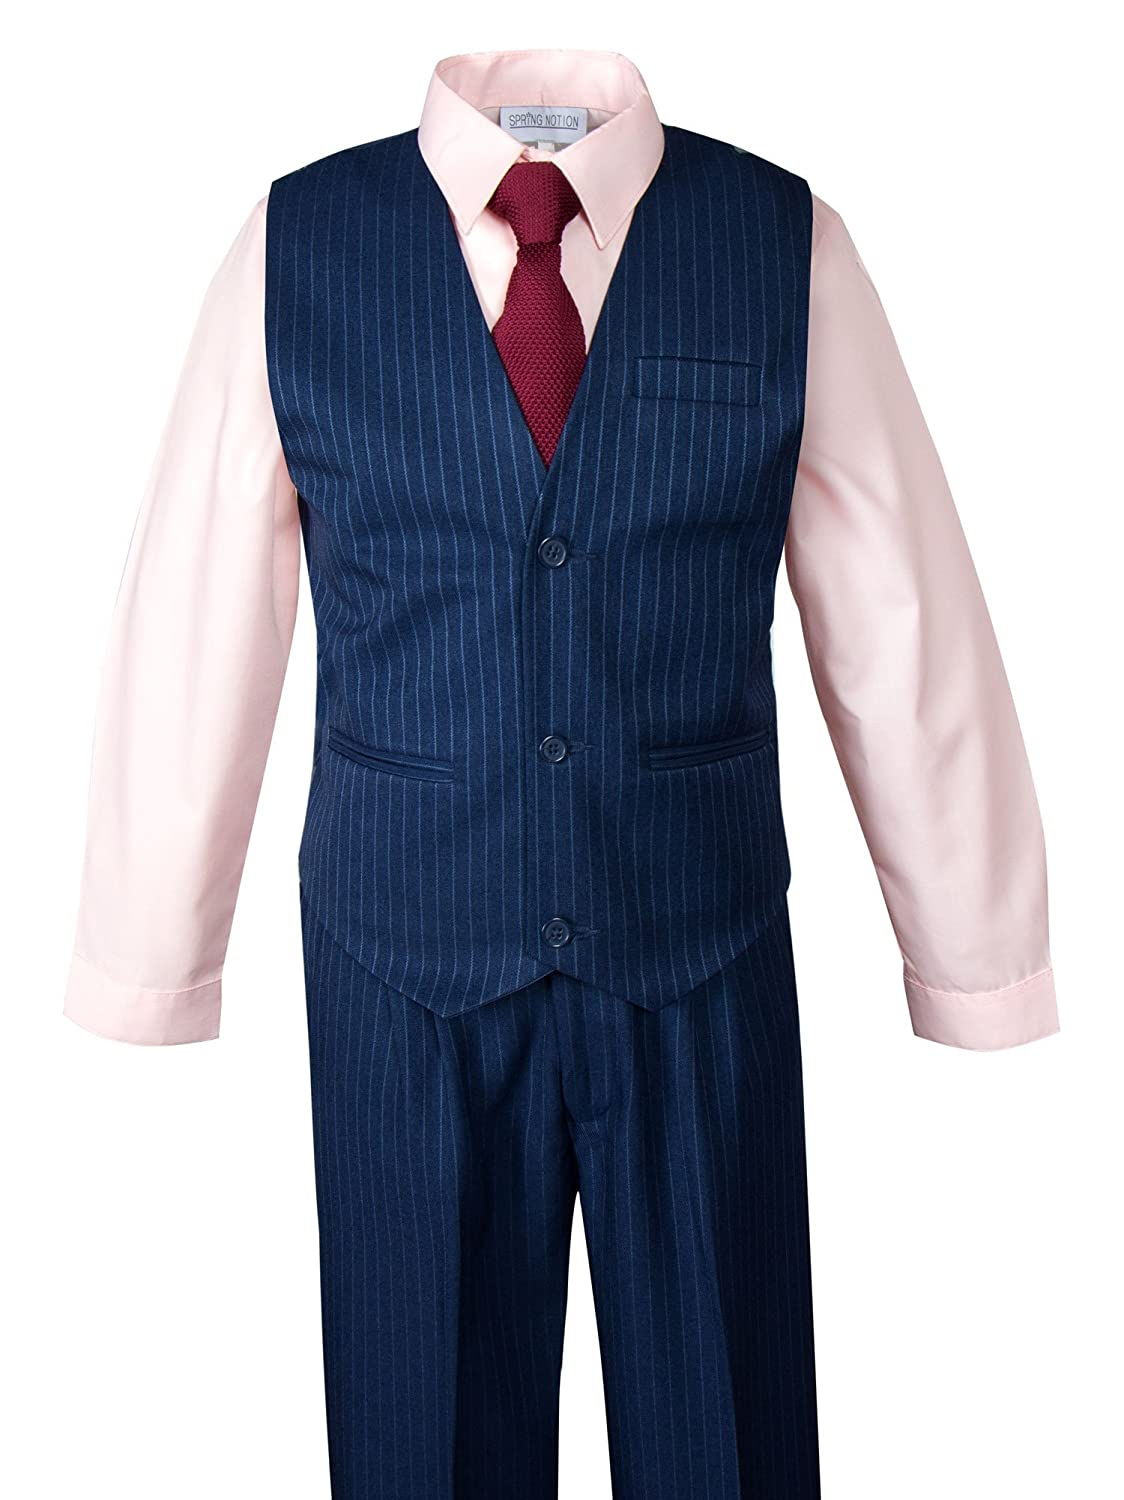 b70270bd8d8cc Amazon.com: Spring Notion Boys' Pinstripe Blue Suit with Knit Tie and Satin  Handkerchief: Clothing